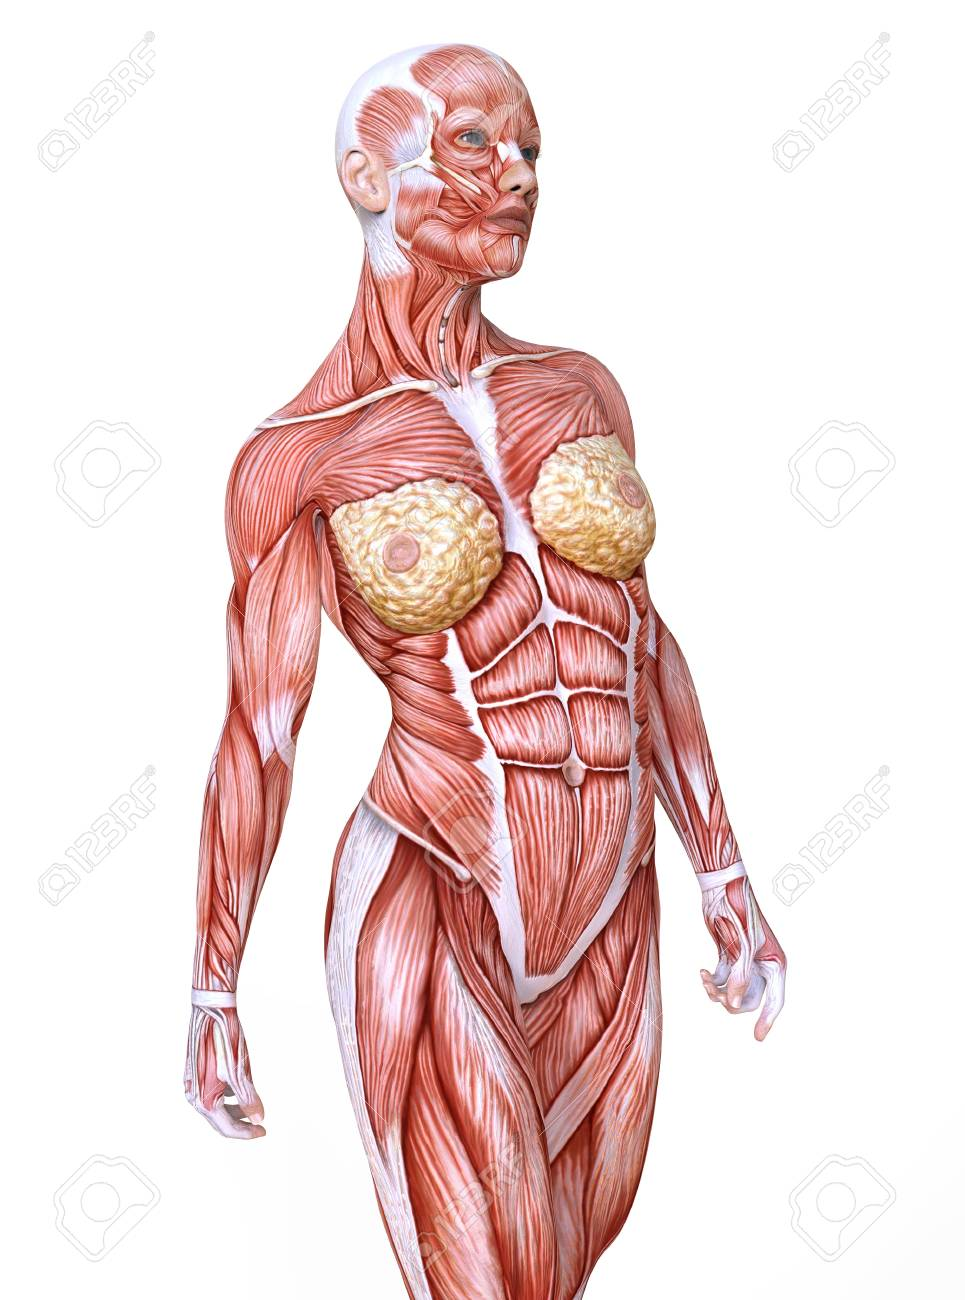 93762946-female-anatomy-and-muscles-body-without-skin-isolated-on-white.jpg